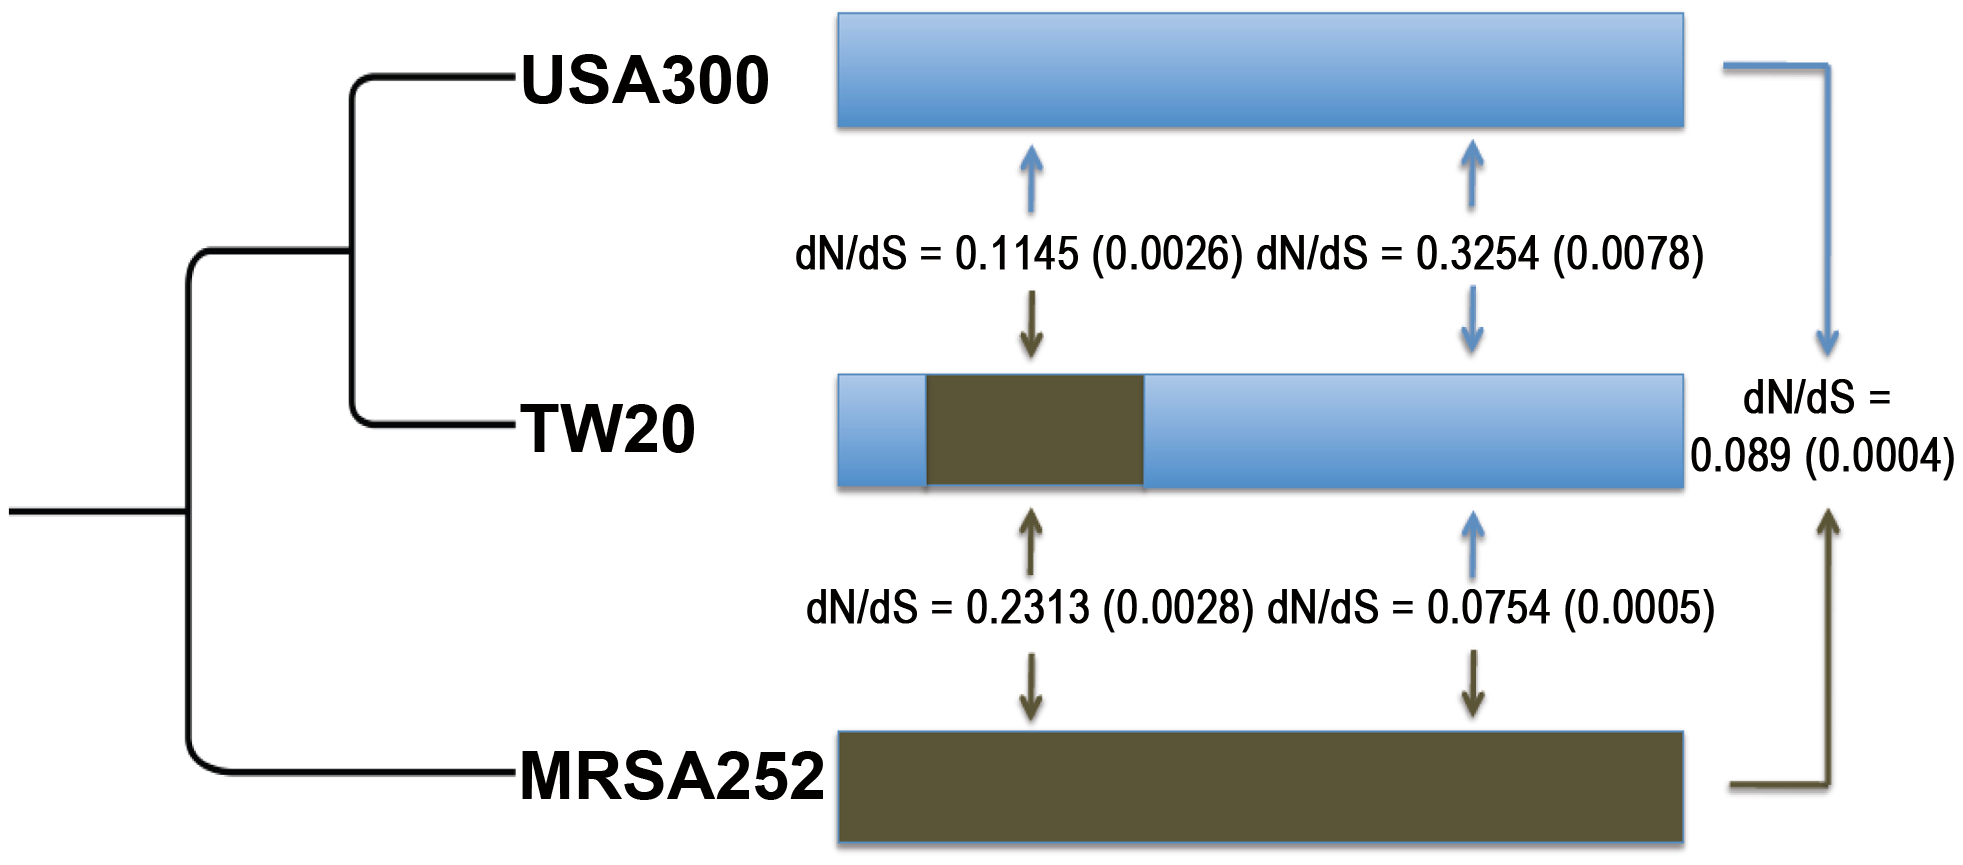 Mean dN/dS values are shown (with standard errors in parentheses) between <i>S. aureus</i> ST239 (TW20) and <i>S. aureus</i> USA300 (USA300), and between TW20 and <i>S. aureus</i> MRSA252 (MRSA252).